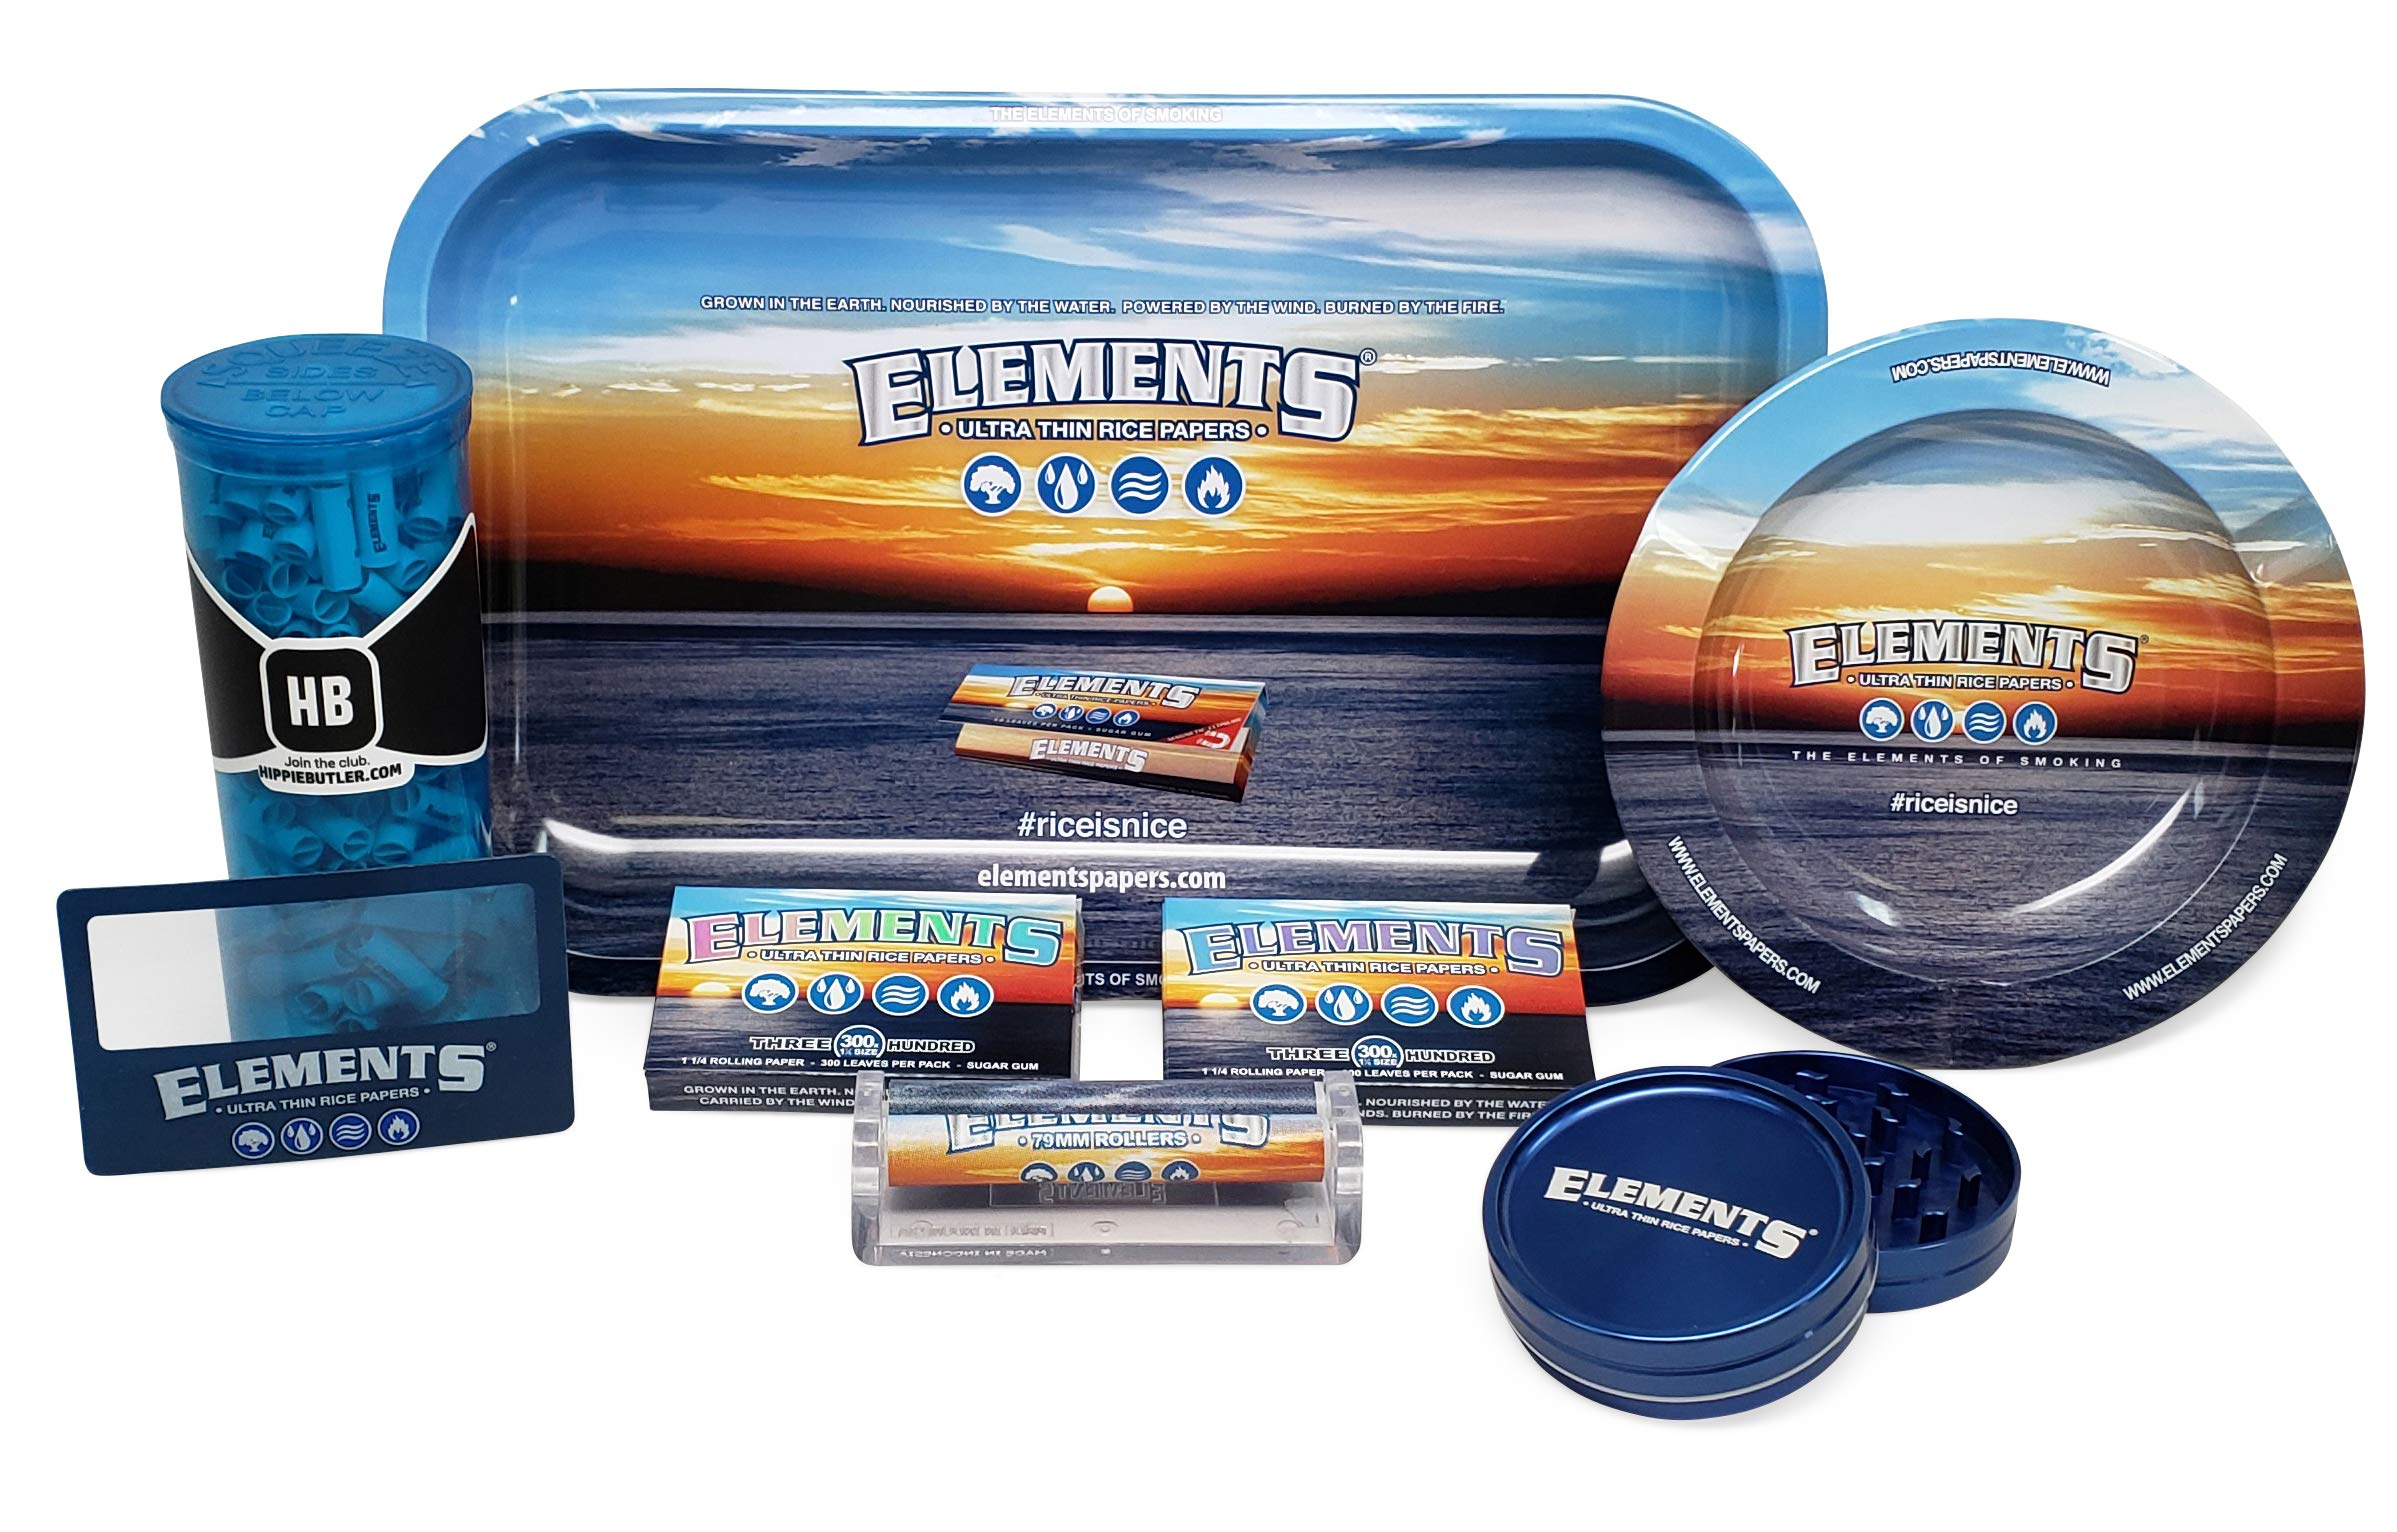 Elements Rolling Papers 300 with Elements Rolling Tray, Ashtray, 79mm Roller, 62mm Grinder, Magnifying Scoop Card, 189 Pre Rolled Tips and Hippie Butler Pop Top Storage Container